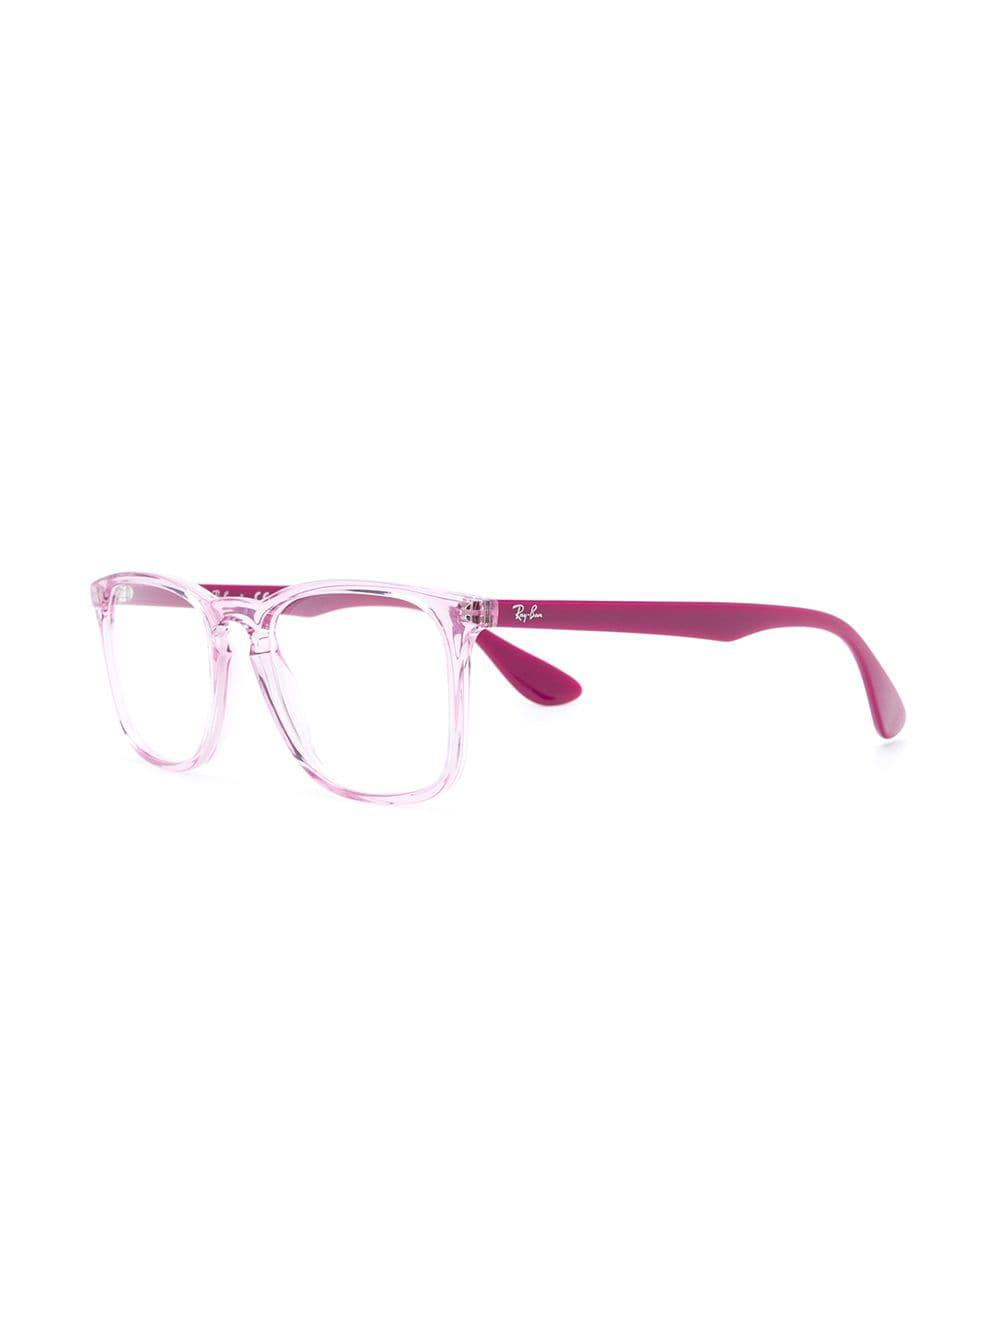 2151d4d45496a Ray-Ban - Pink Square Acetate Glasses - Lyst. View fullscreen